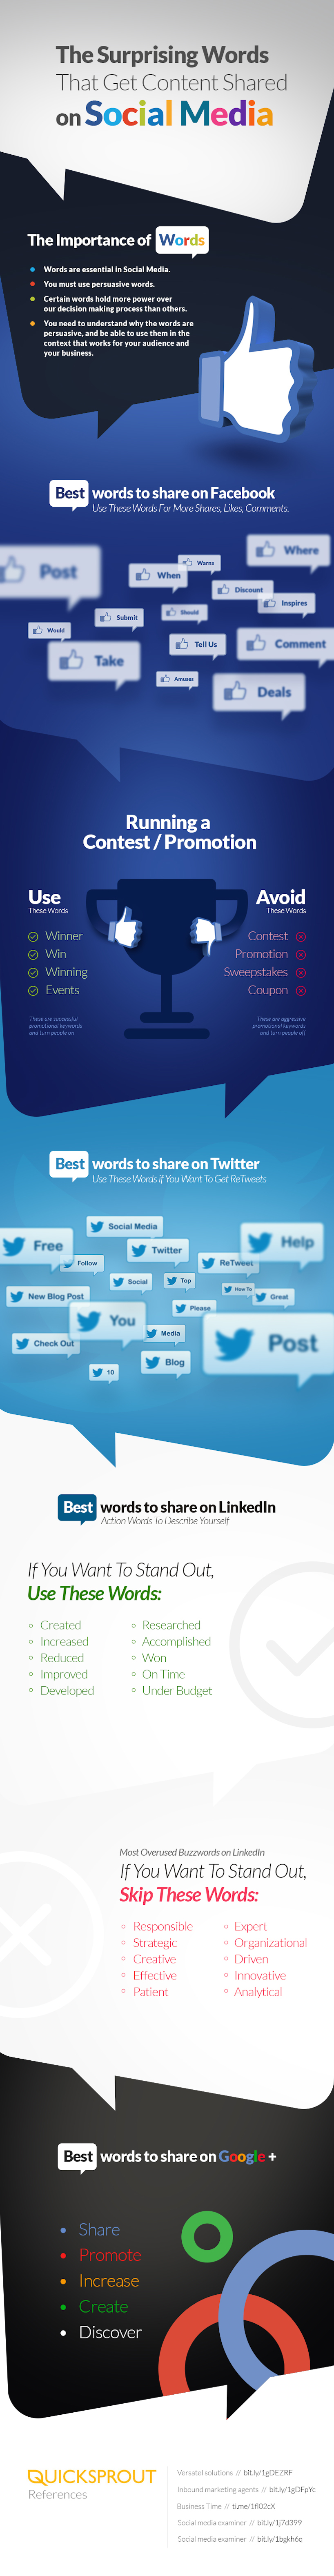 The Surprising Words That Get Content Shared on Social Media